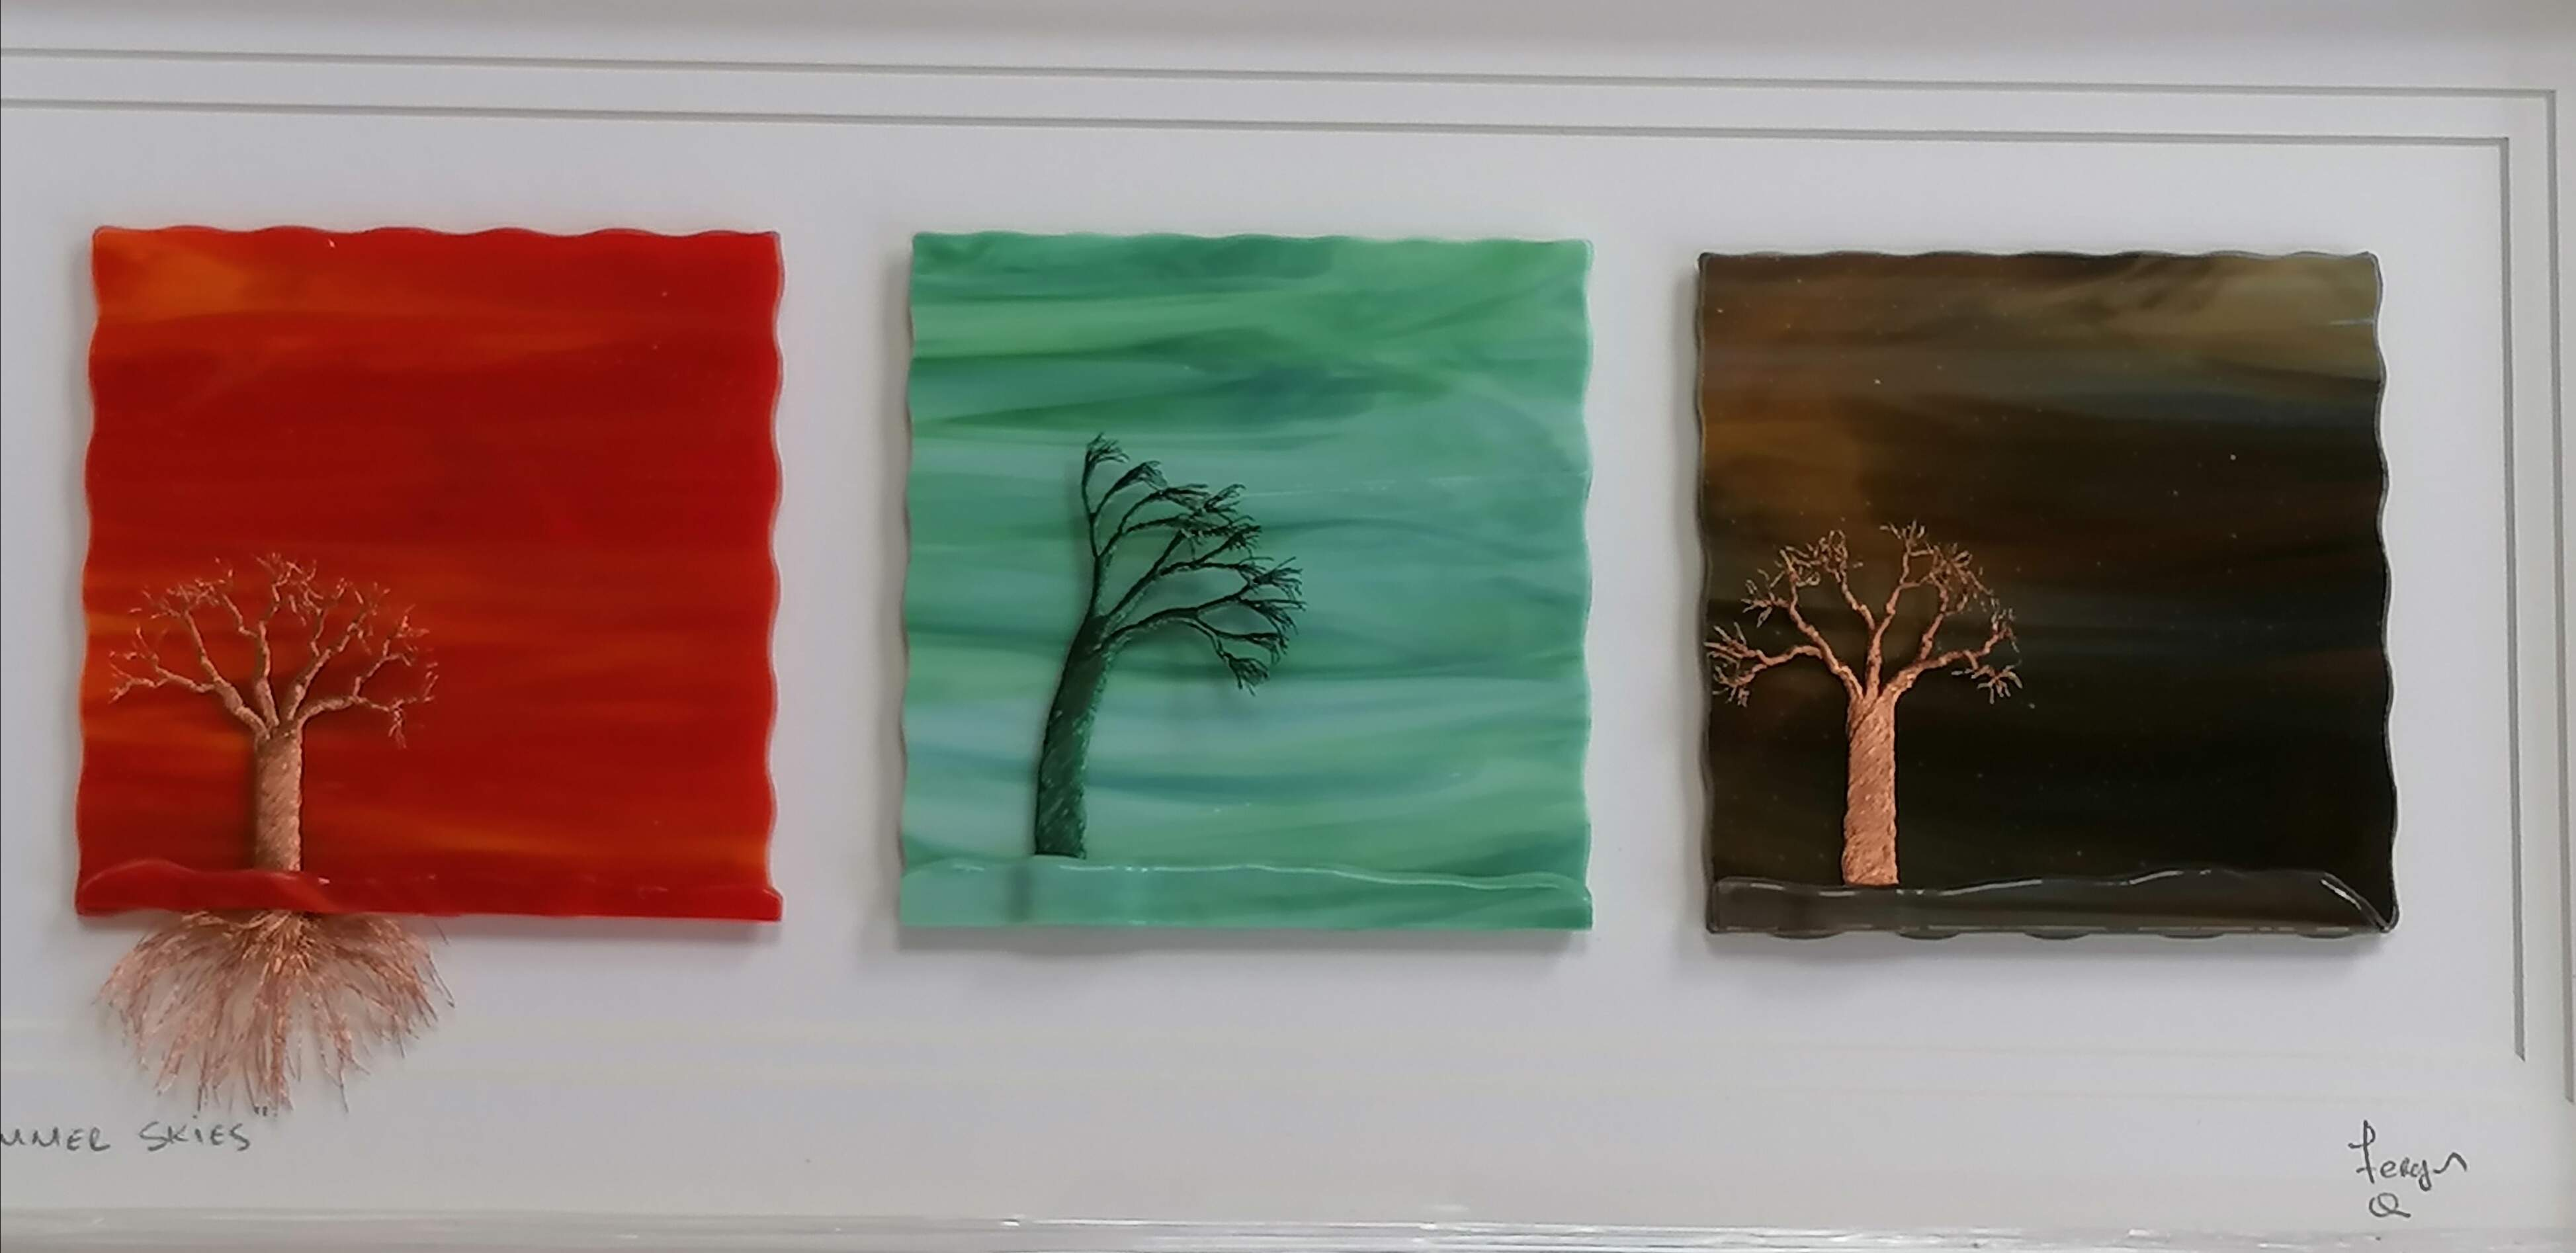 3 Glass Art Pictures, with handmade Copper wire Tree, finished in a White wooden frame.